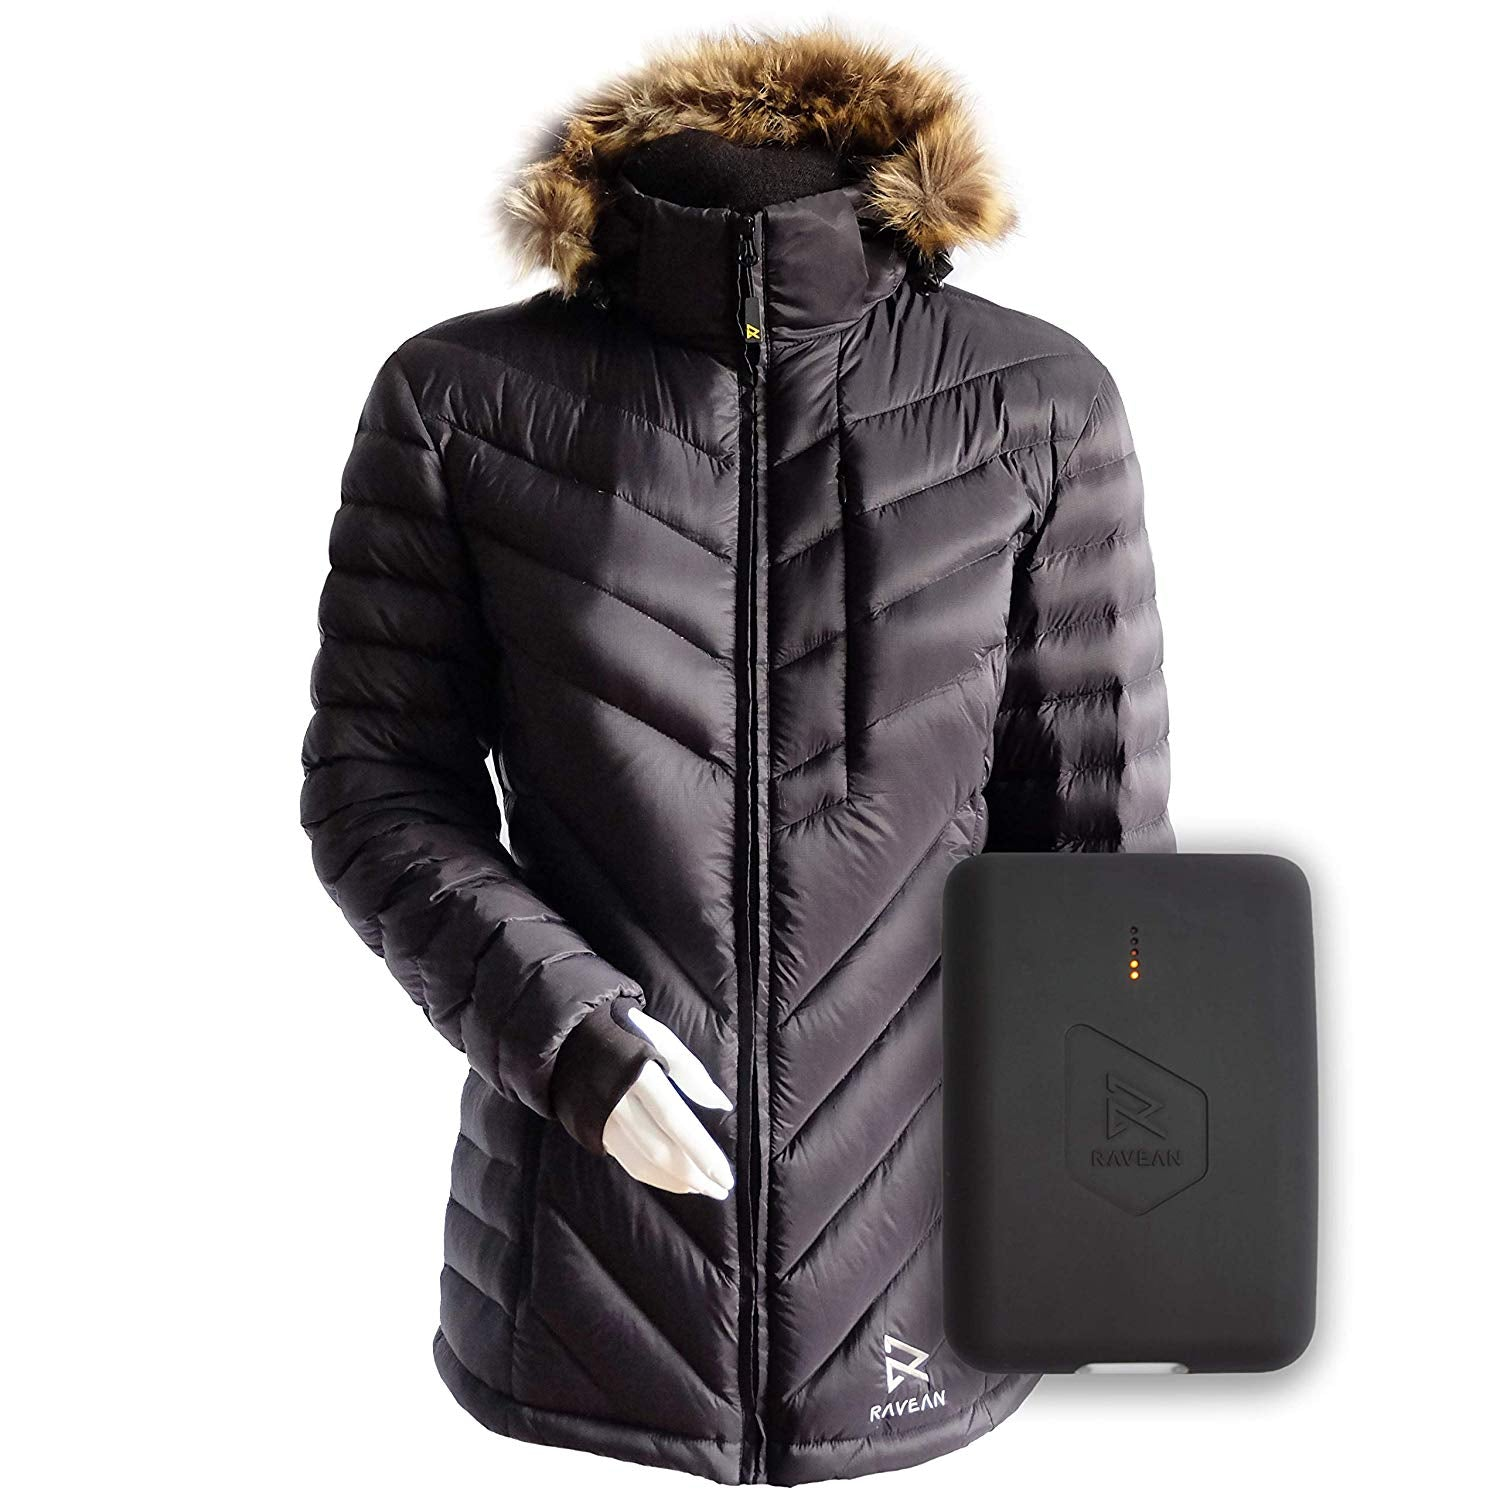 Women's Down Heated Jacket | Lightweight Water Resistant Jacket w/Mobile Charging Outlet Detachable Hood & Battery - kats closet1